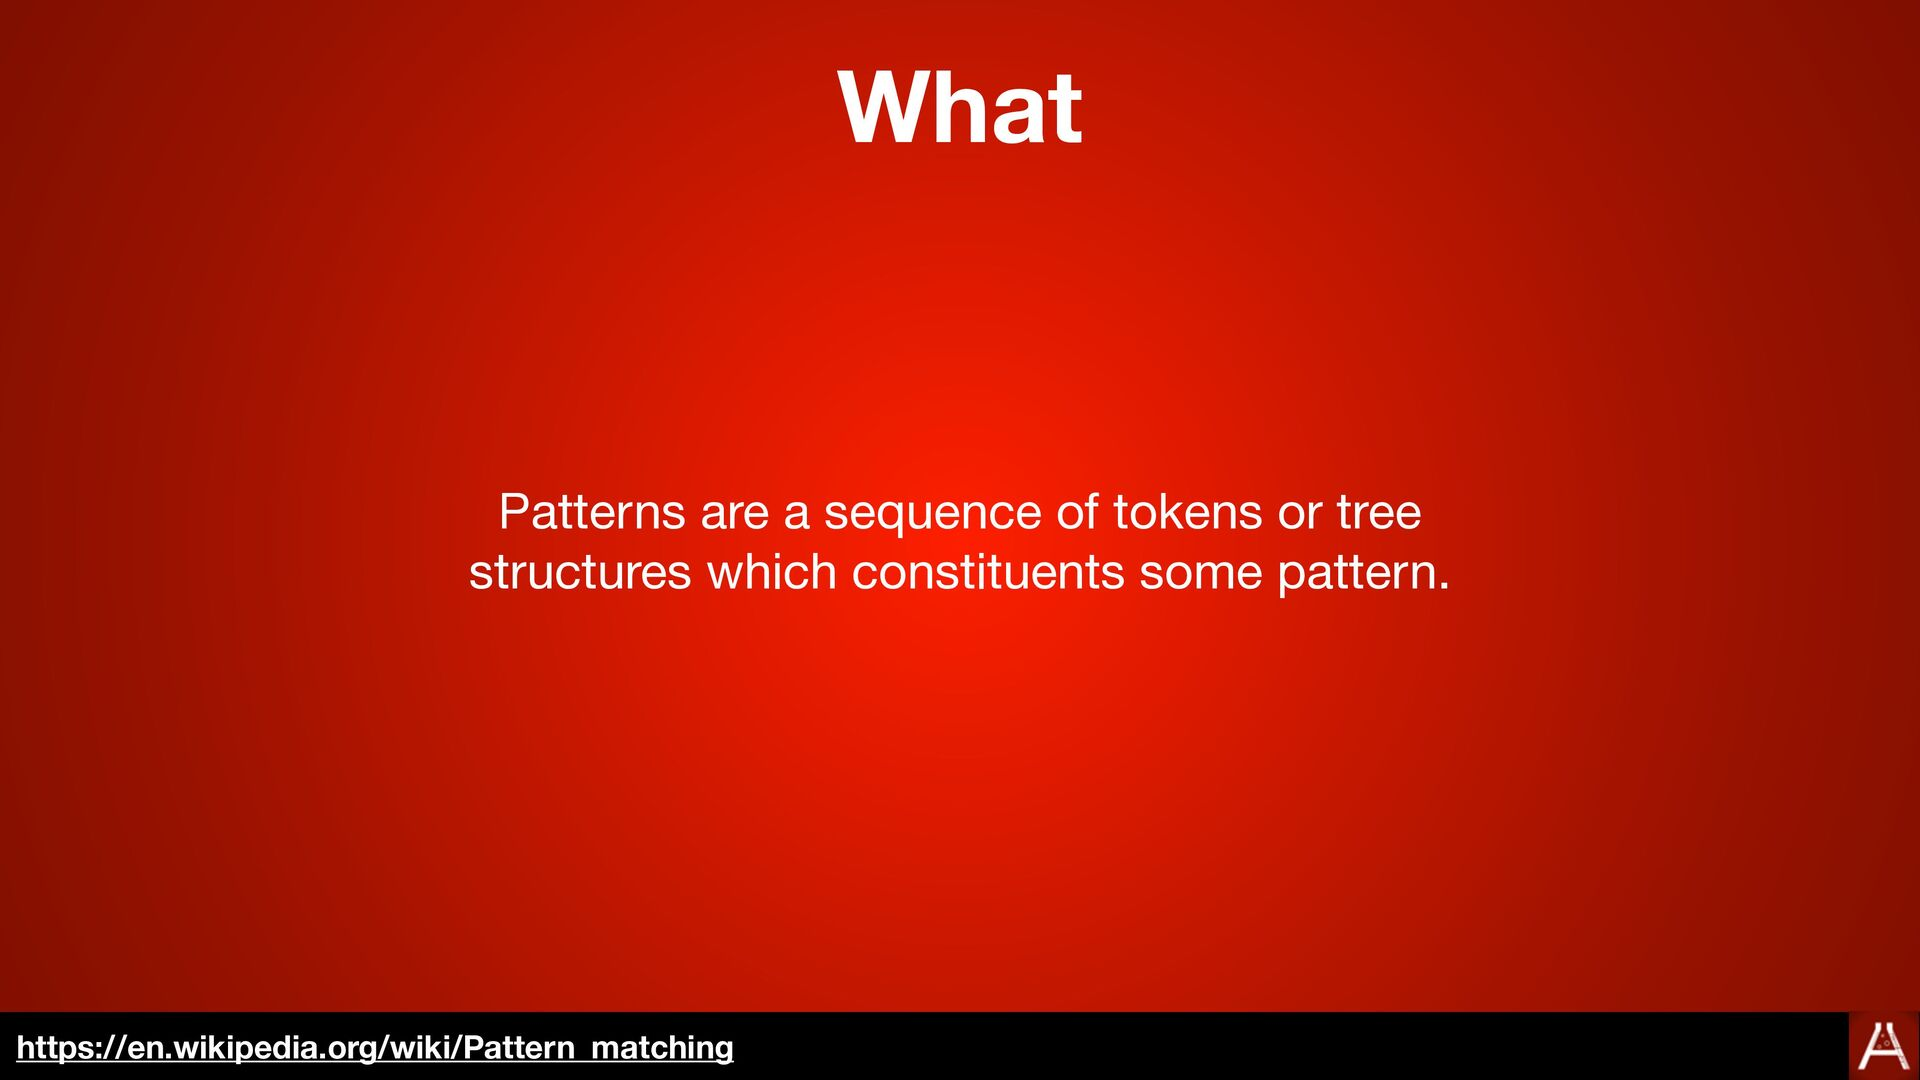 Basic Syntax <expression> in <pattern> https://...